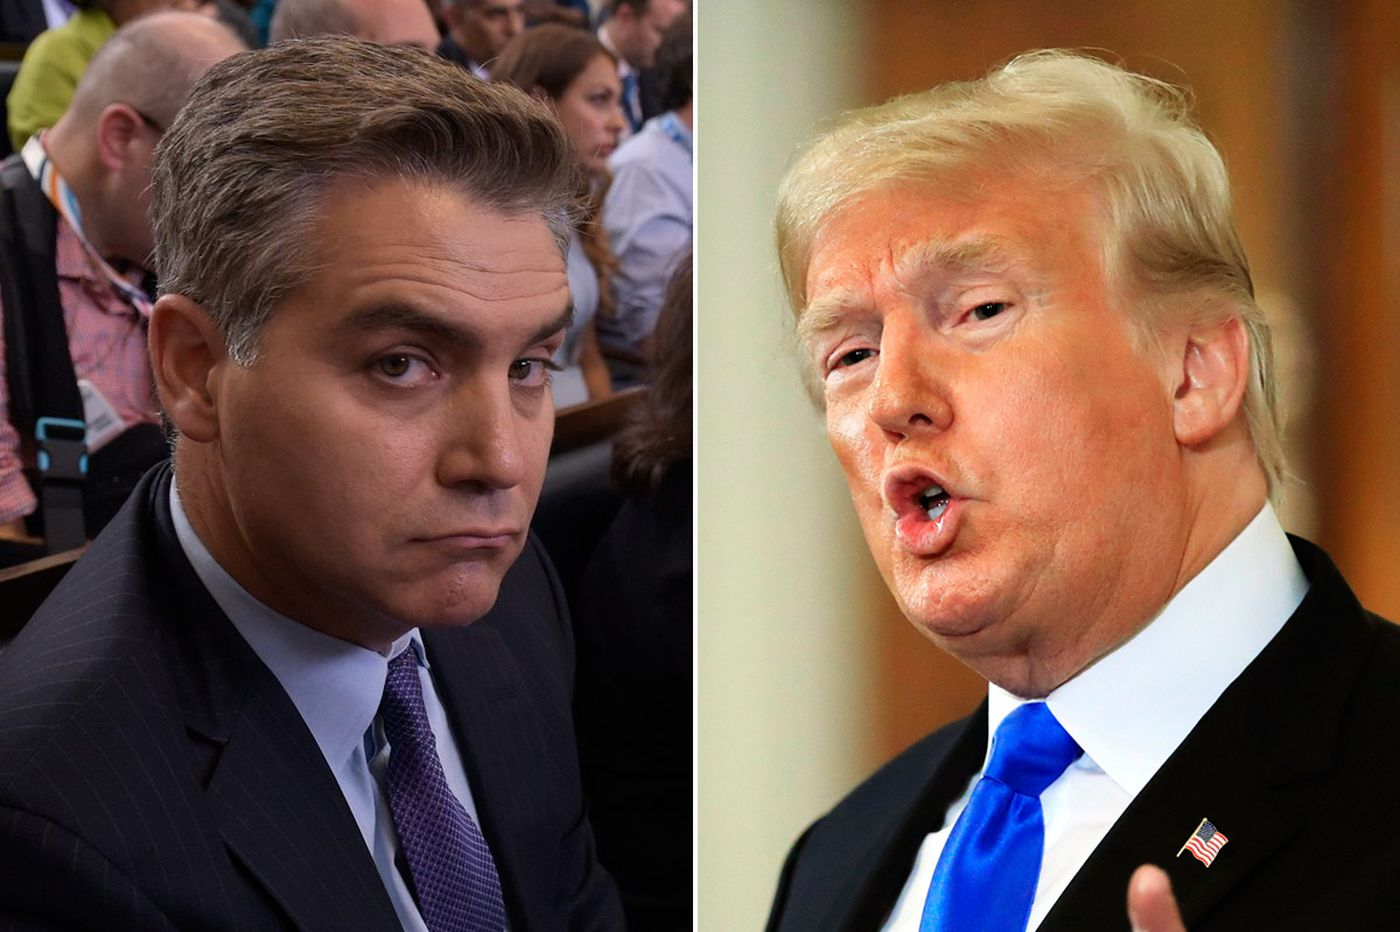 CNN sues Trump over Jim Acosta press pass